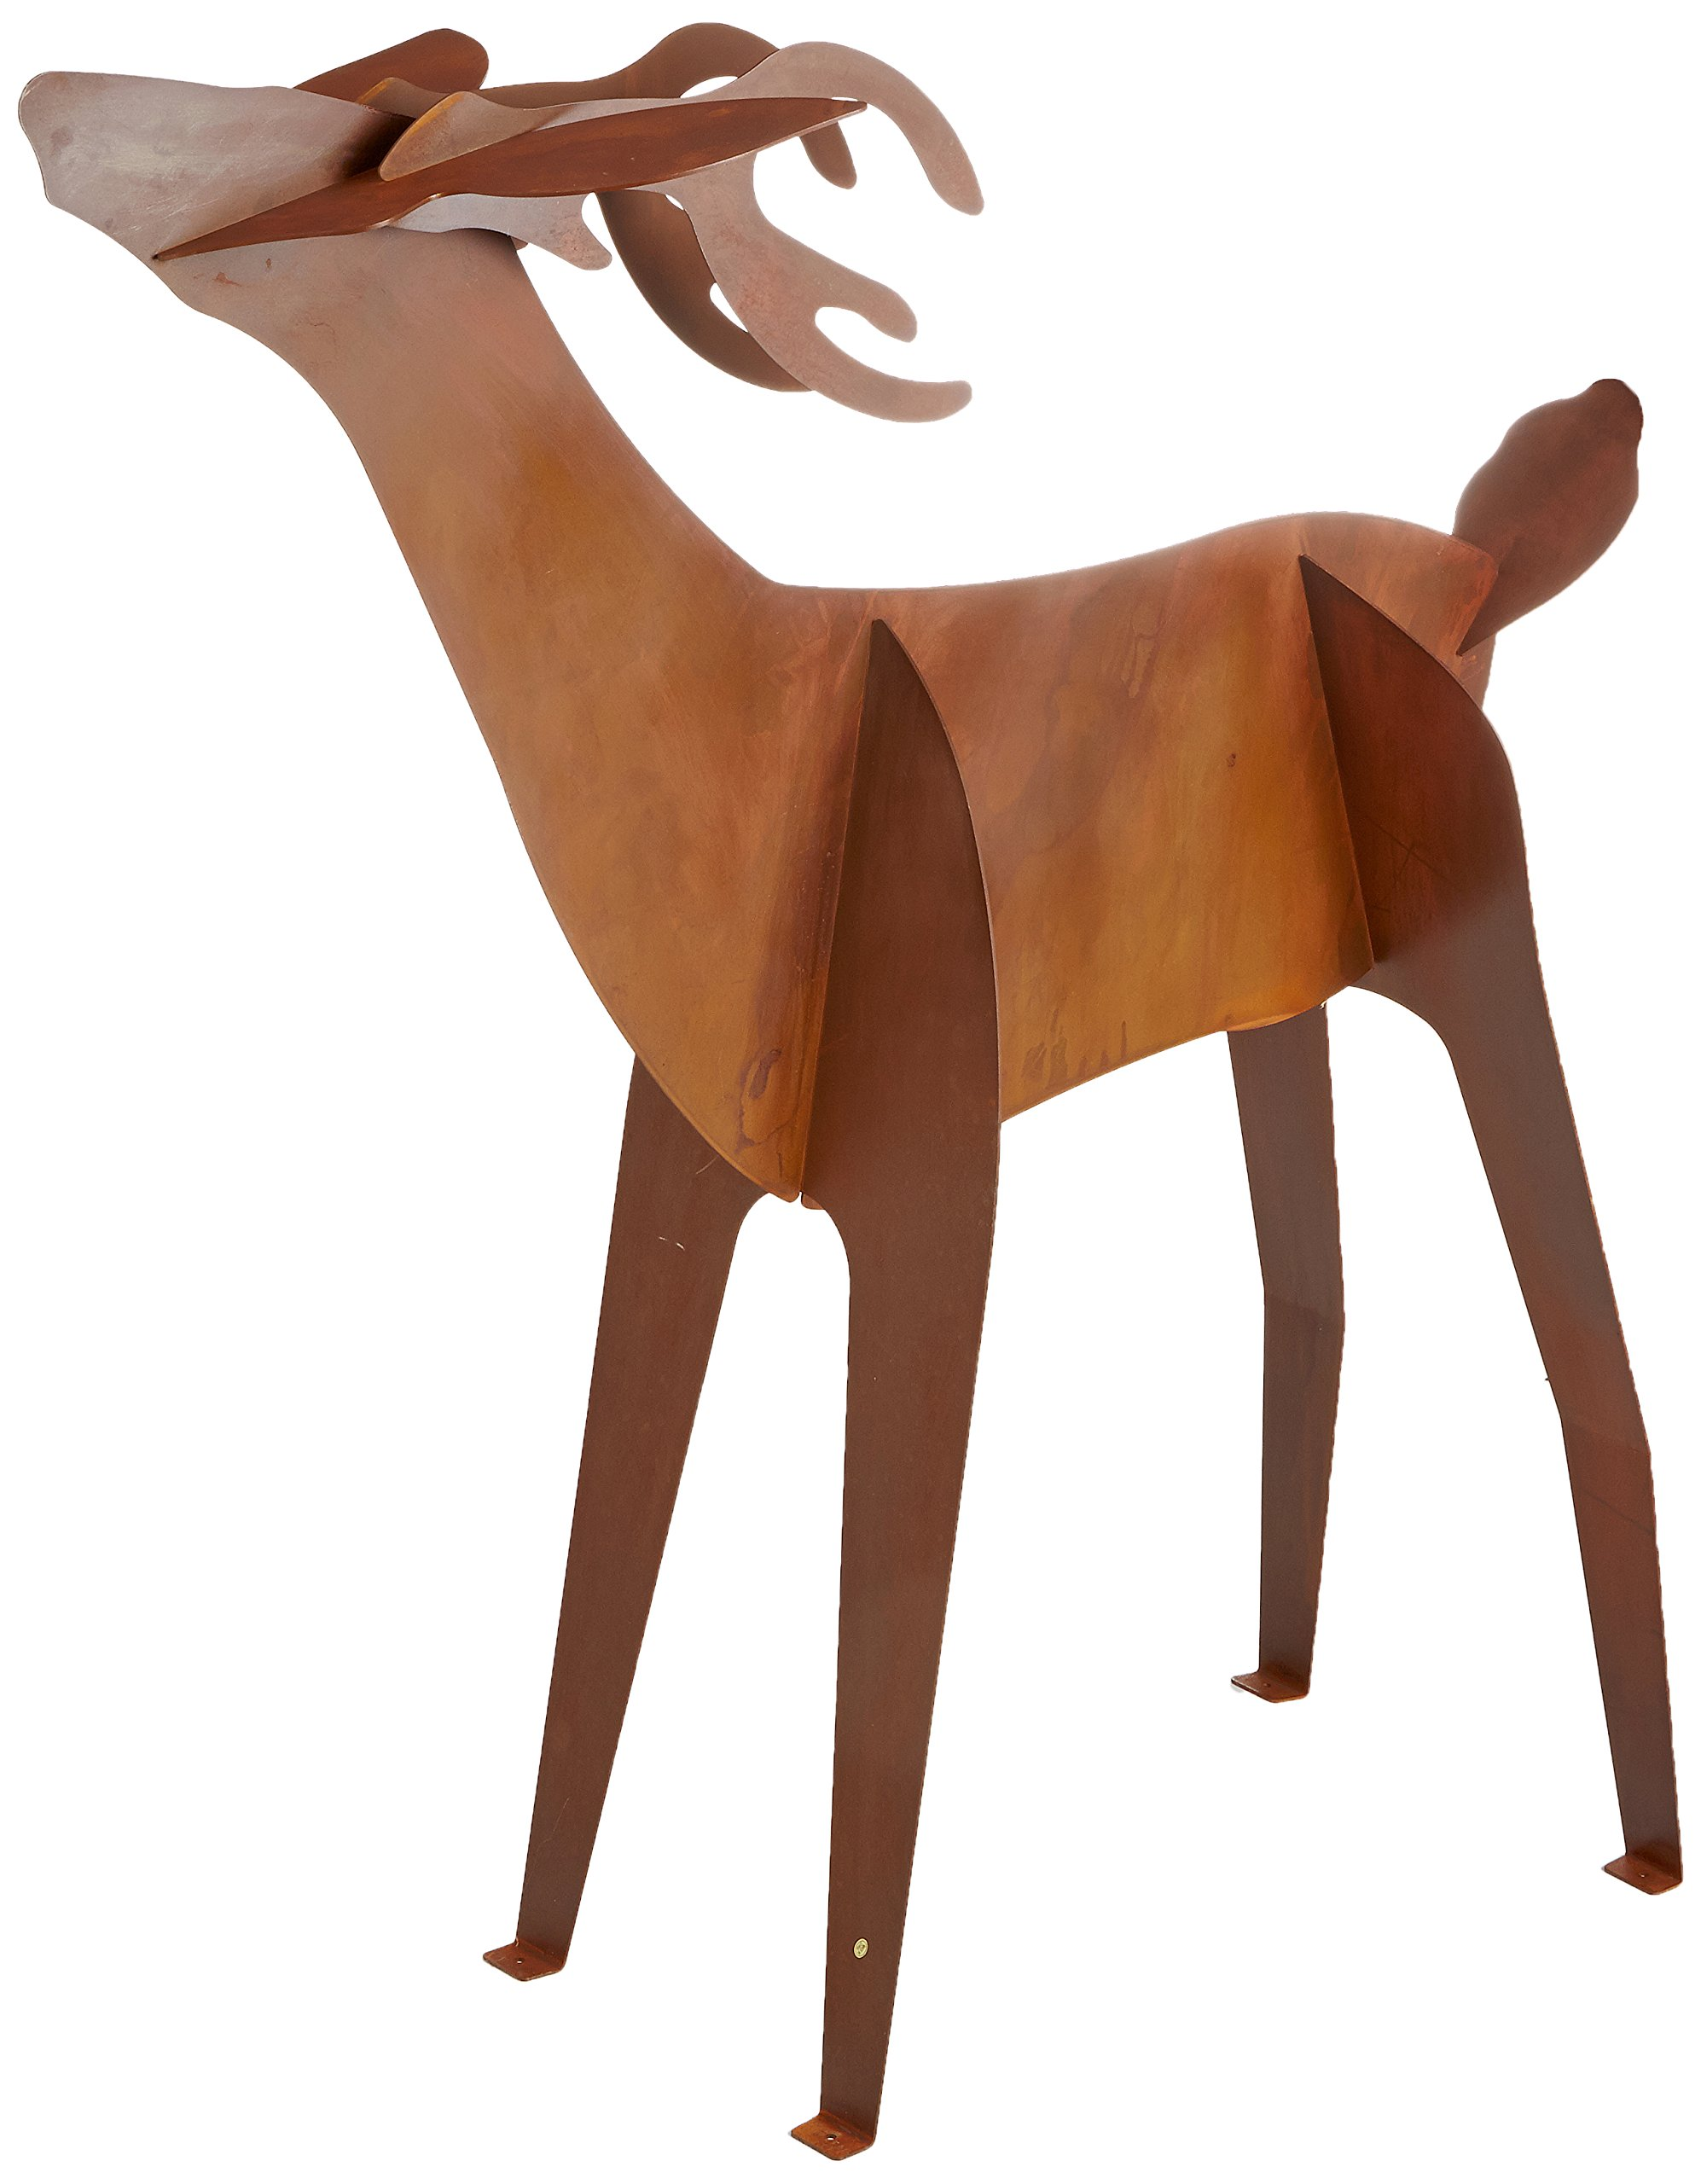 Fantasy Fauna LSBH-81 Buck 'Testing The Winds' Pre-Rusted Steel Sculpture, Life Size